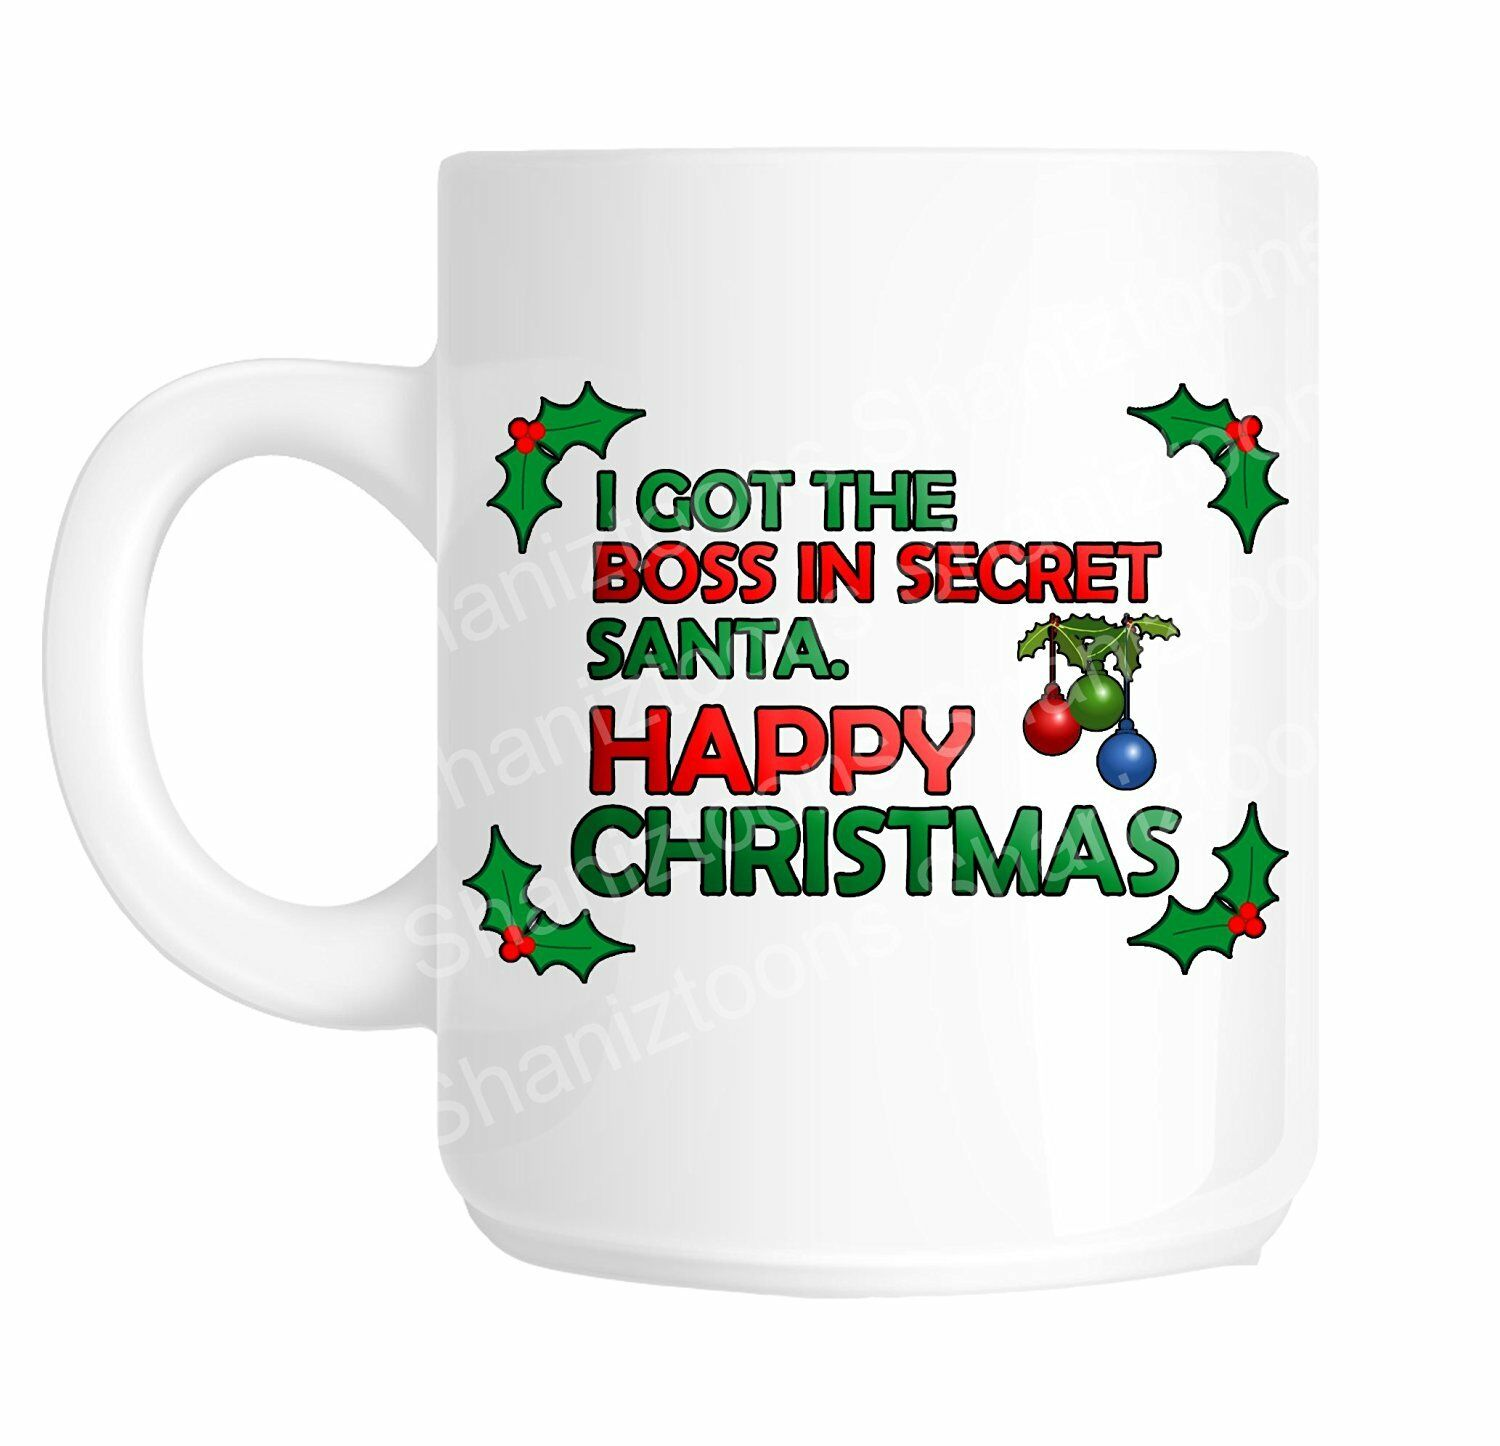 secret santa christmas boss funny office joke gift mug shan760 1 of 1free shipping